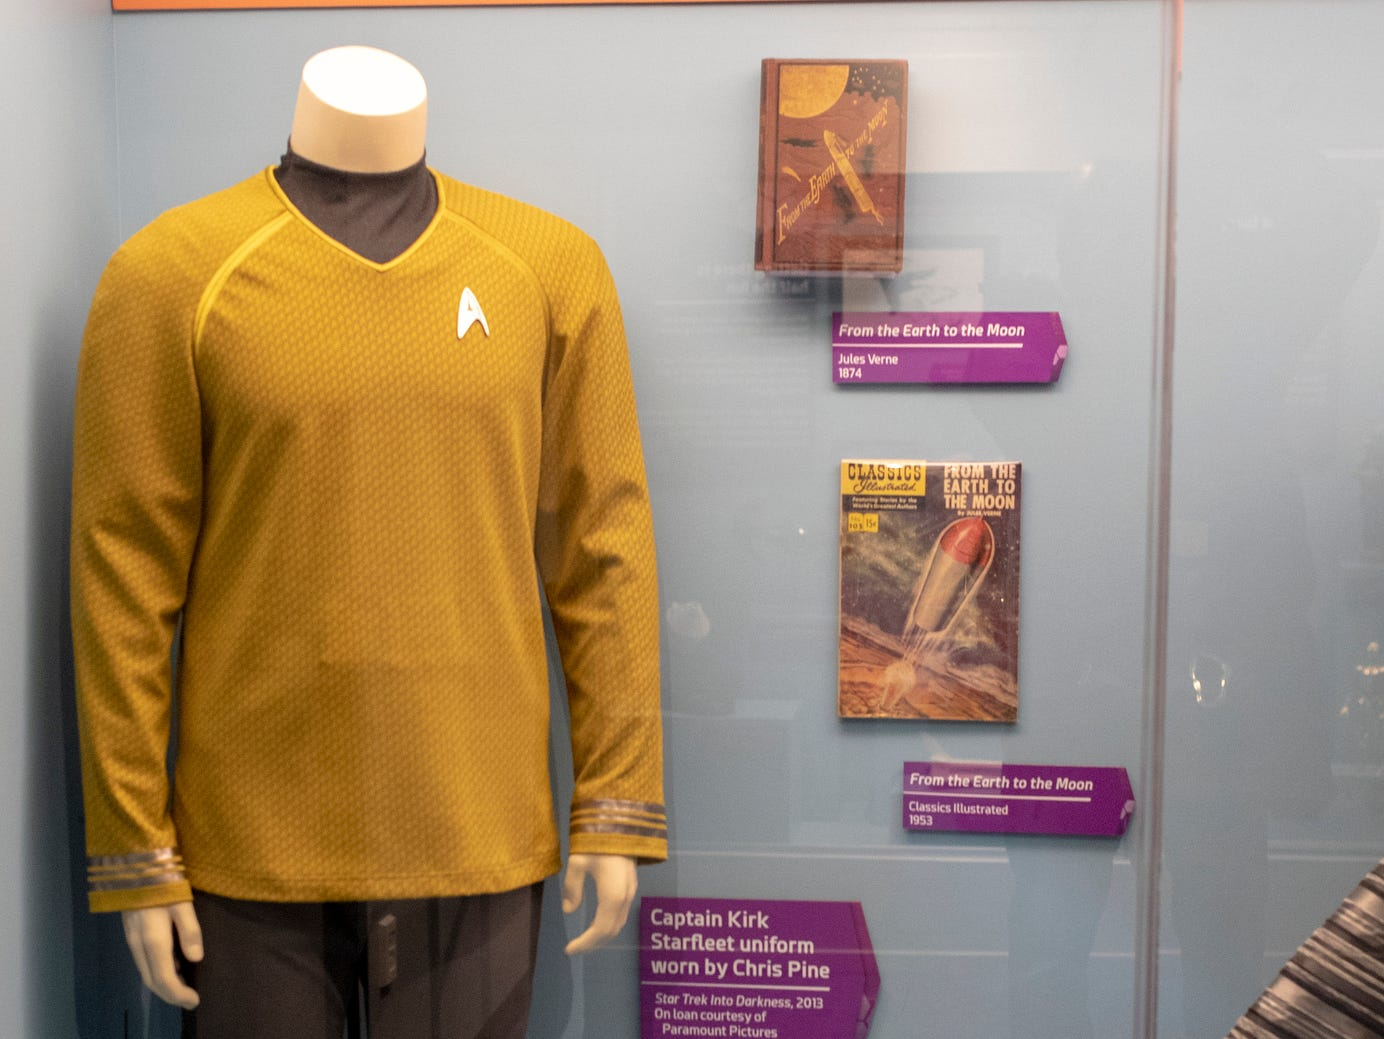 """A Captain Kirk Starfleet uniform worn by actor Chris Pine in the more recent Star Trek films is seen at The Children's Museum of Indianapolis, Wednesday, Jan. 23, 2019. The """"Star Trek: Exploring New Worlds"""" exhibit is made up of set pieces, ship models and outfits used during various Star Trek shows and movies and is on display at the museum from Feb. 2 through April 7, 2019."""